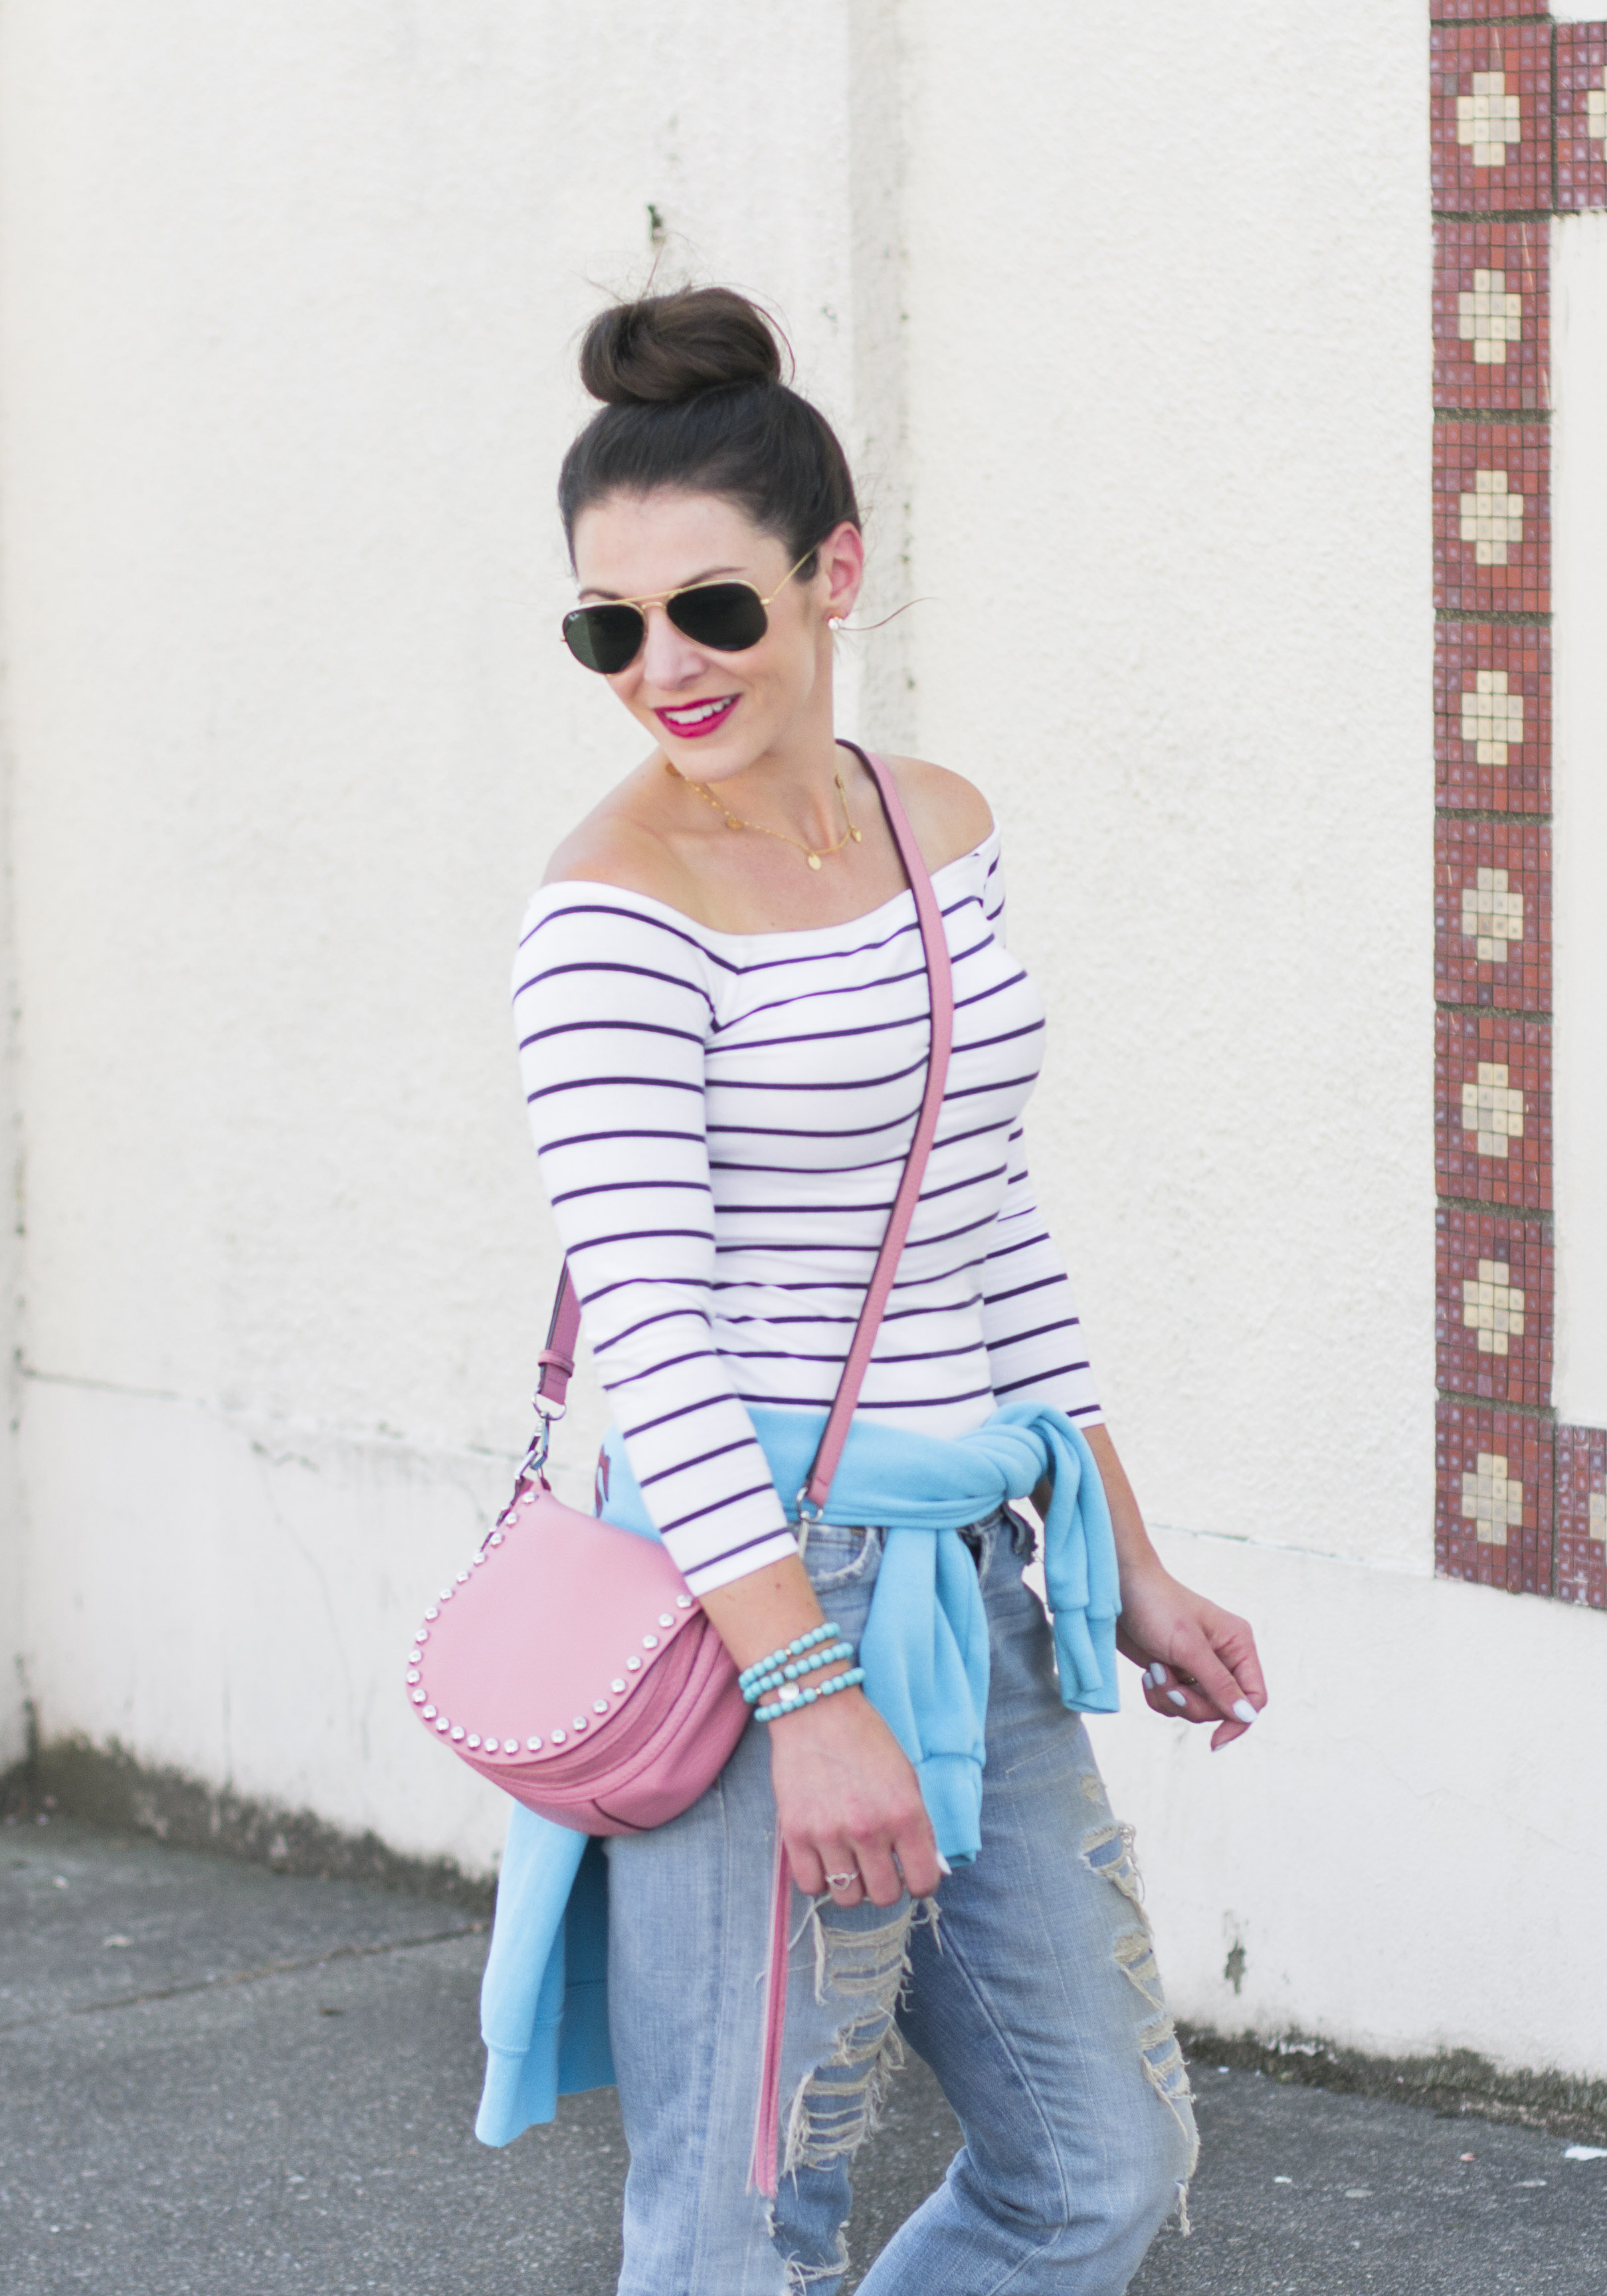 Save money on fall fashion by buying vintage clothing.  4 tips to find the best vintage pieces to save you money on fall apparel.  Boyfriend jeans, vintage baseball sweatshirt, off the shoulder top for fall, gladiator sandals, Rebecca Minkoff unlined saddle bag.